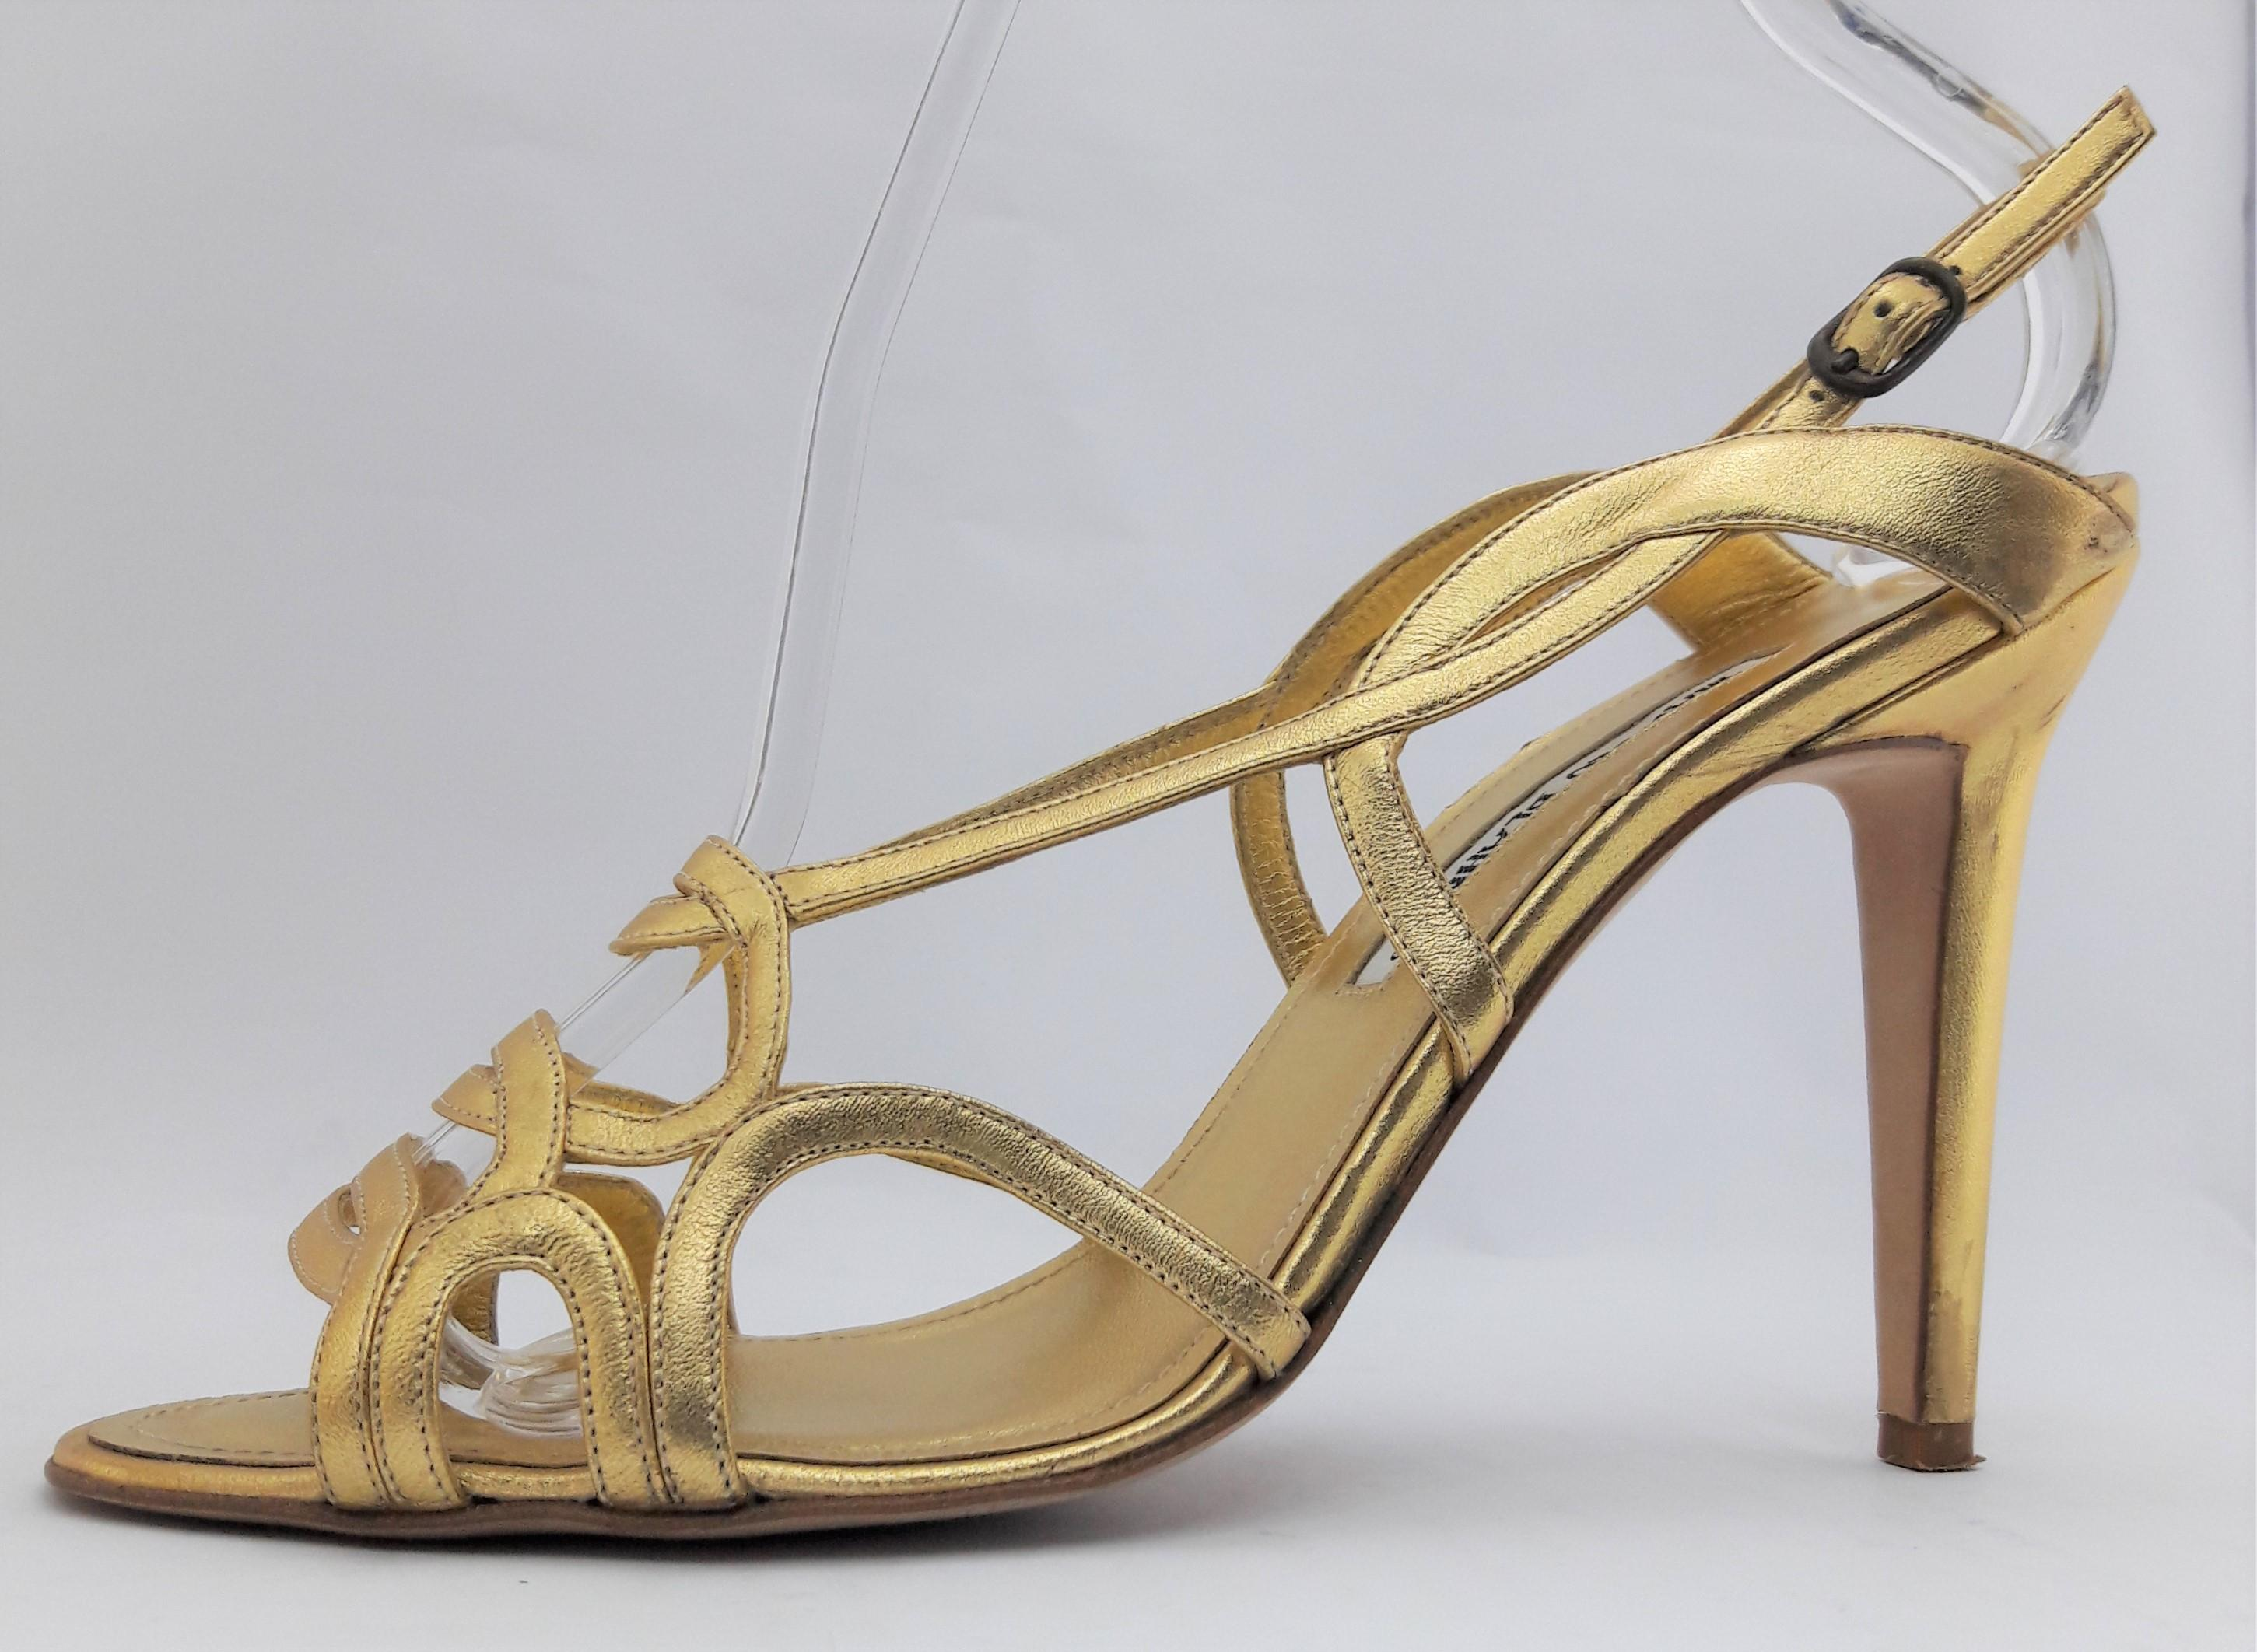 Manolo Blahnik Fertillia Slingback Sandals amazing price online outlet how much shopping online for sale buy cheap limited edition sale shop for aJ9Oeb